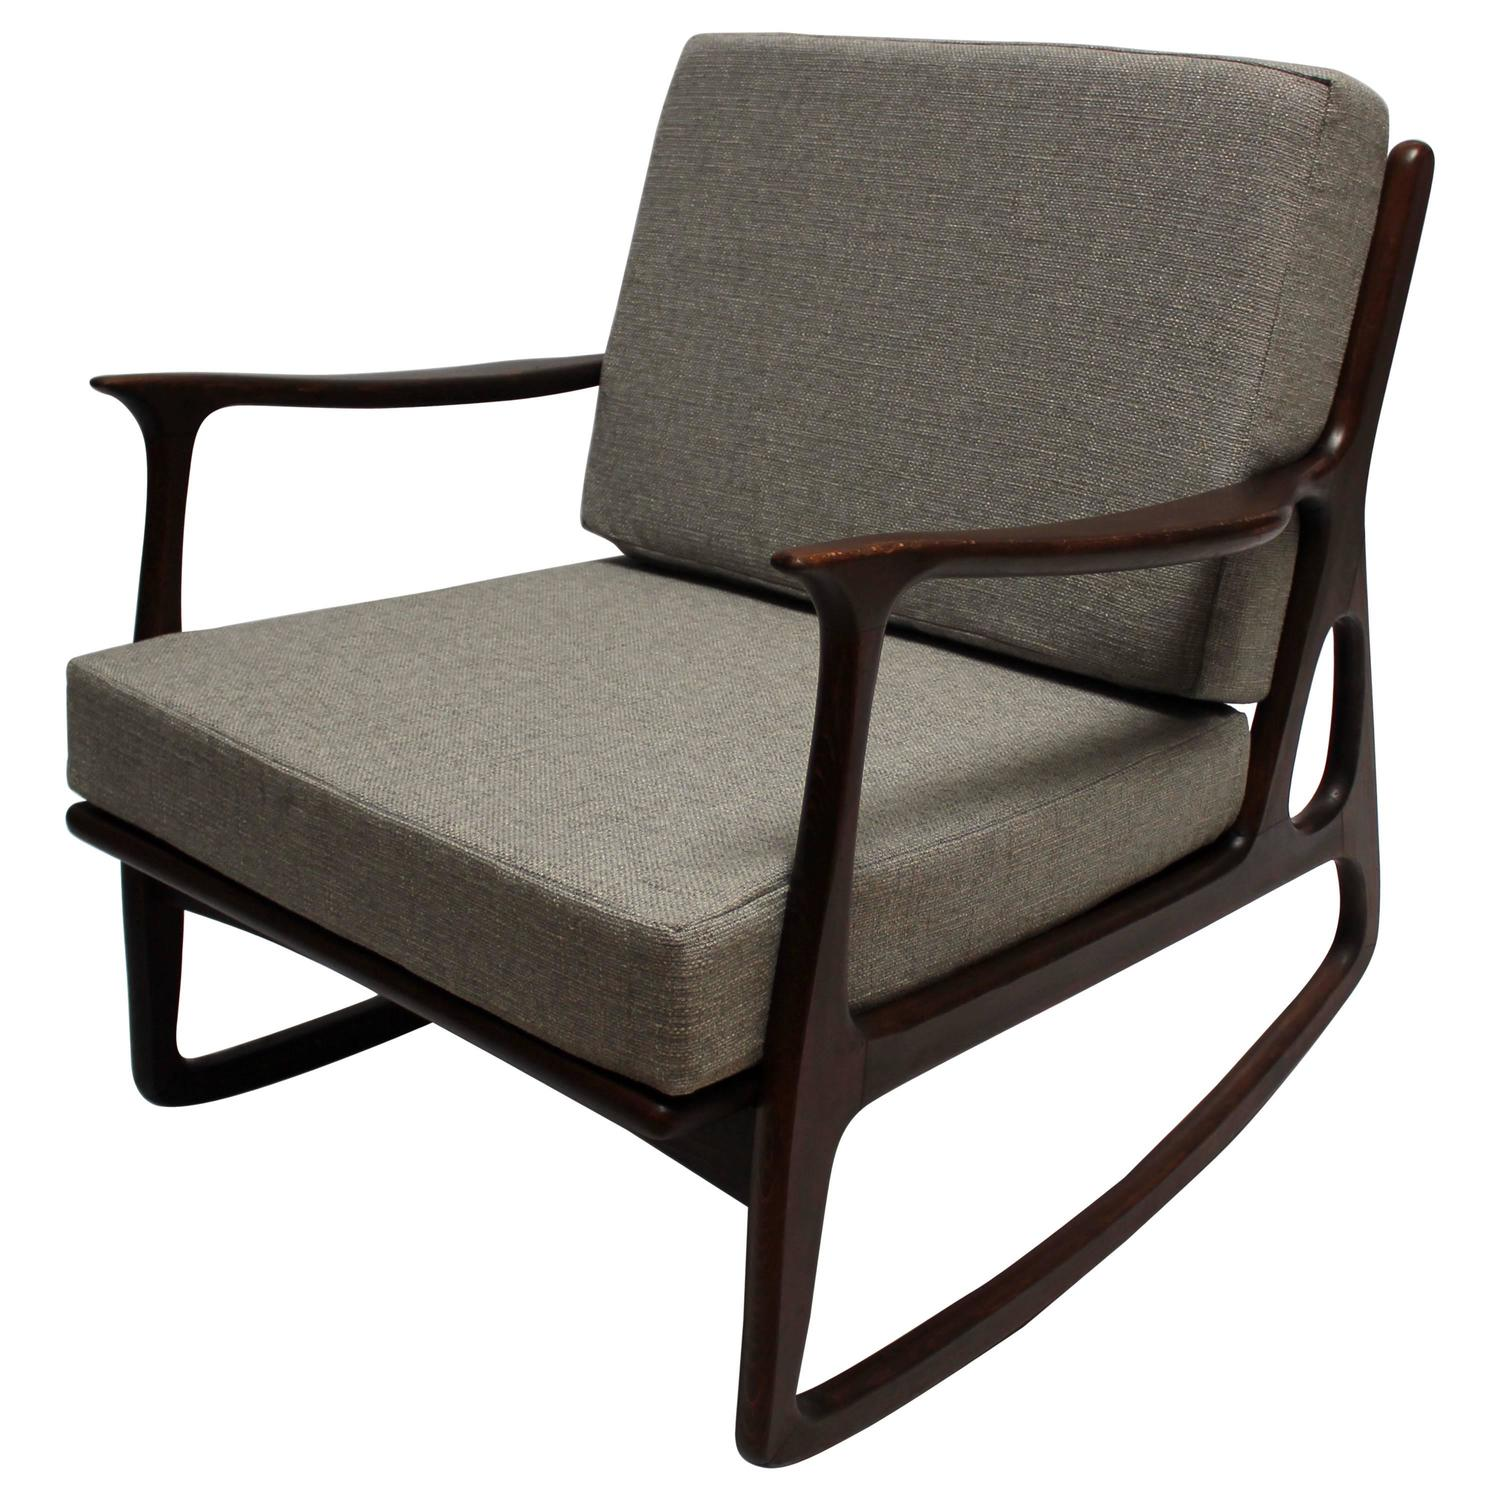 Mid Century Modern Upholstered Chair Of Mid Century Modern Italian Upholstered Walnut Rocking